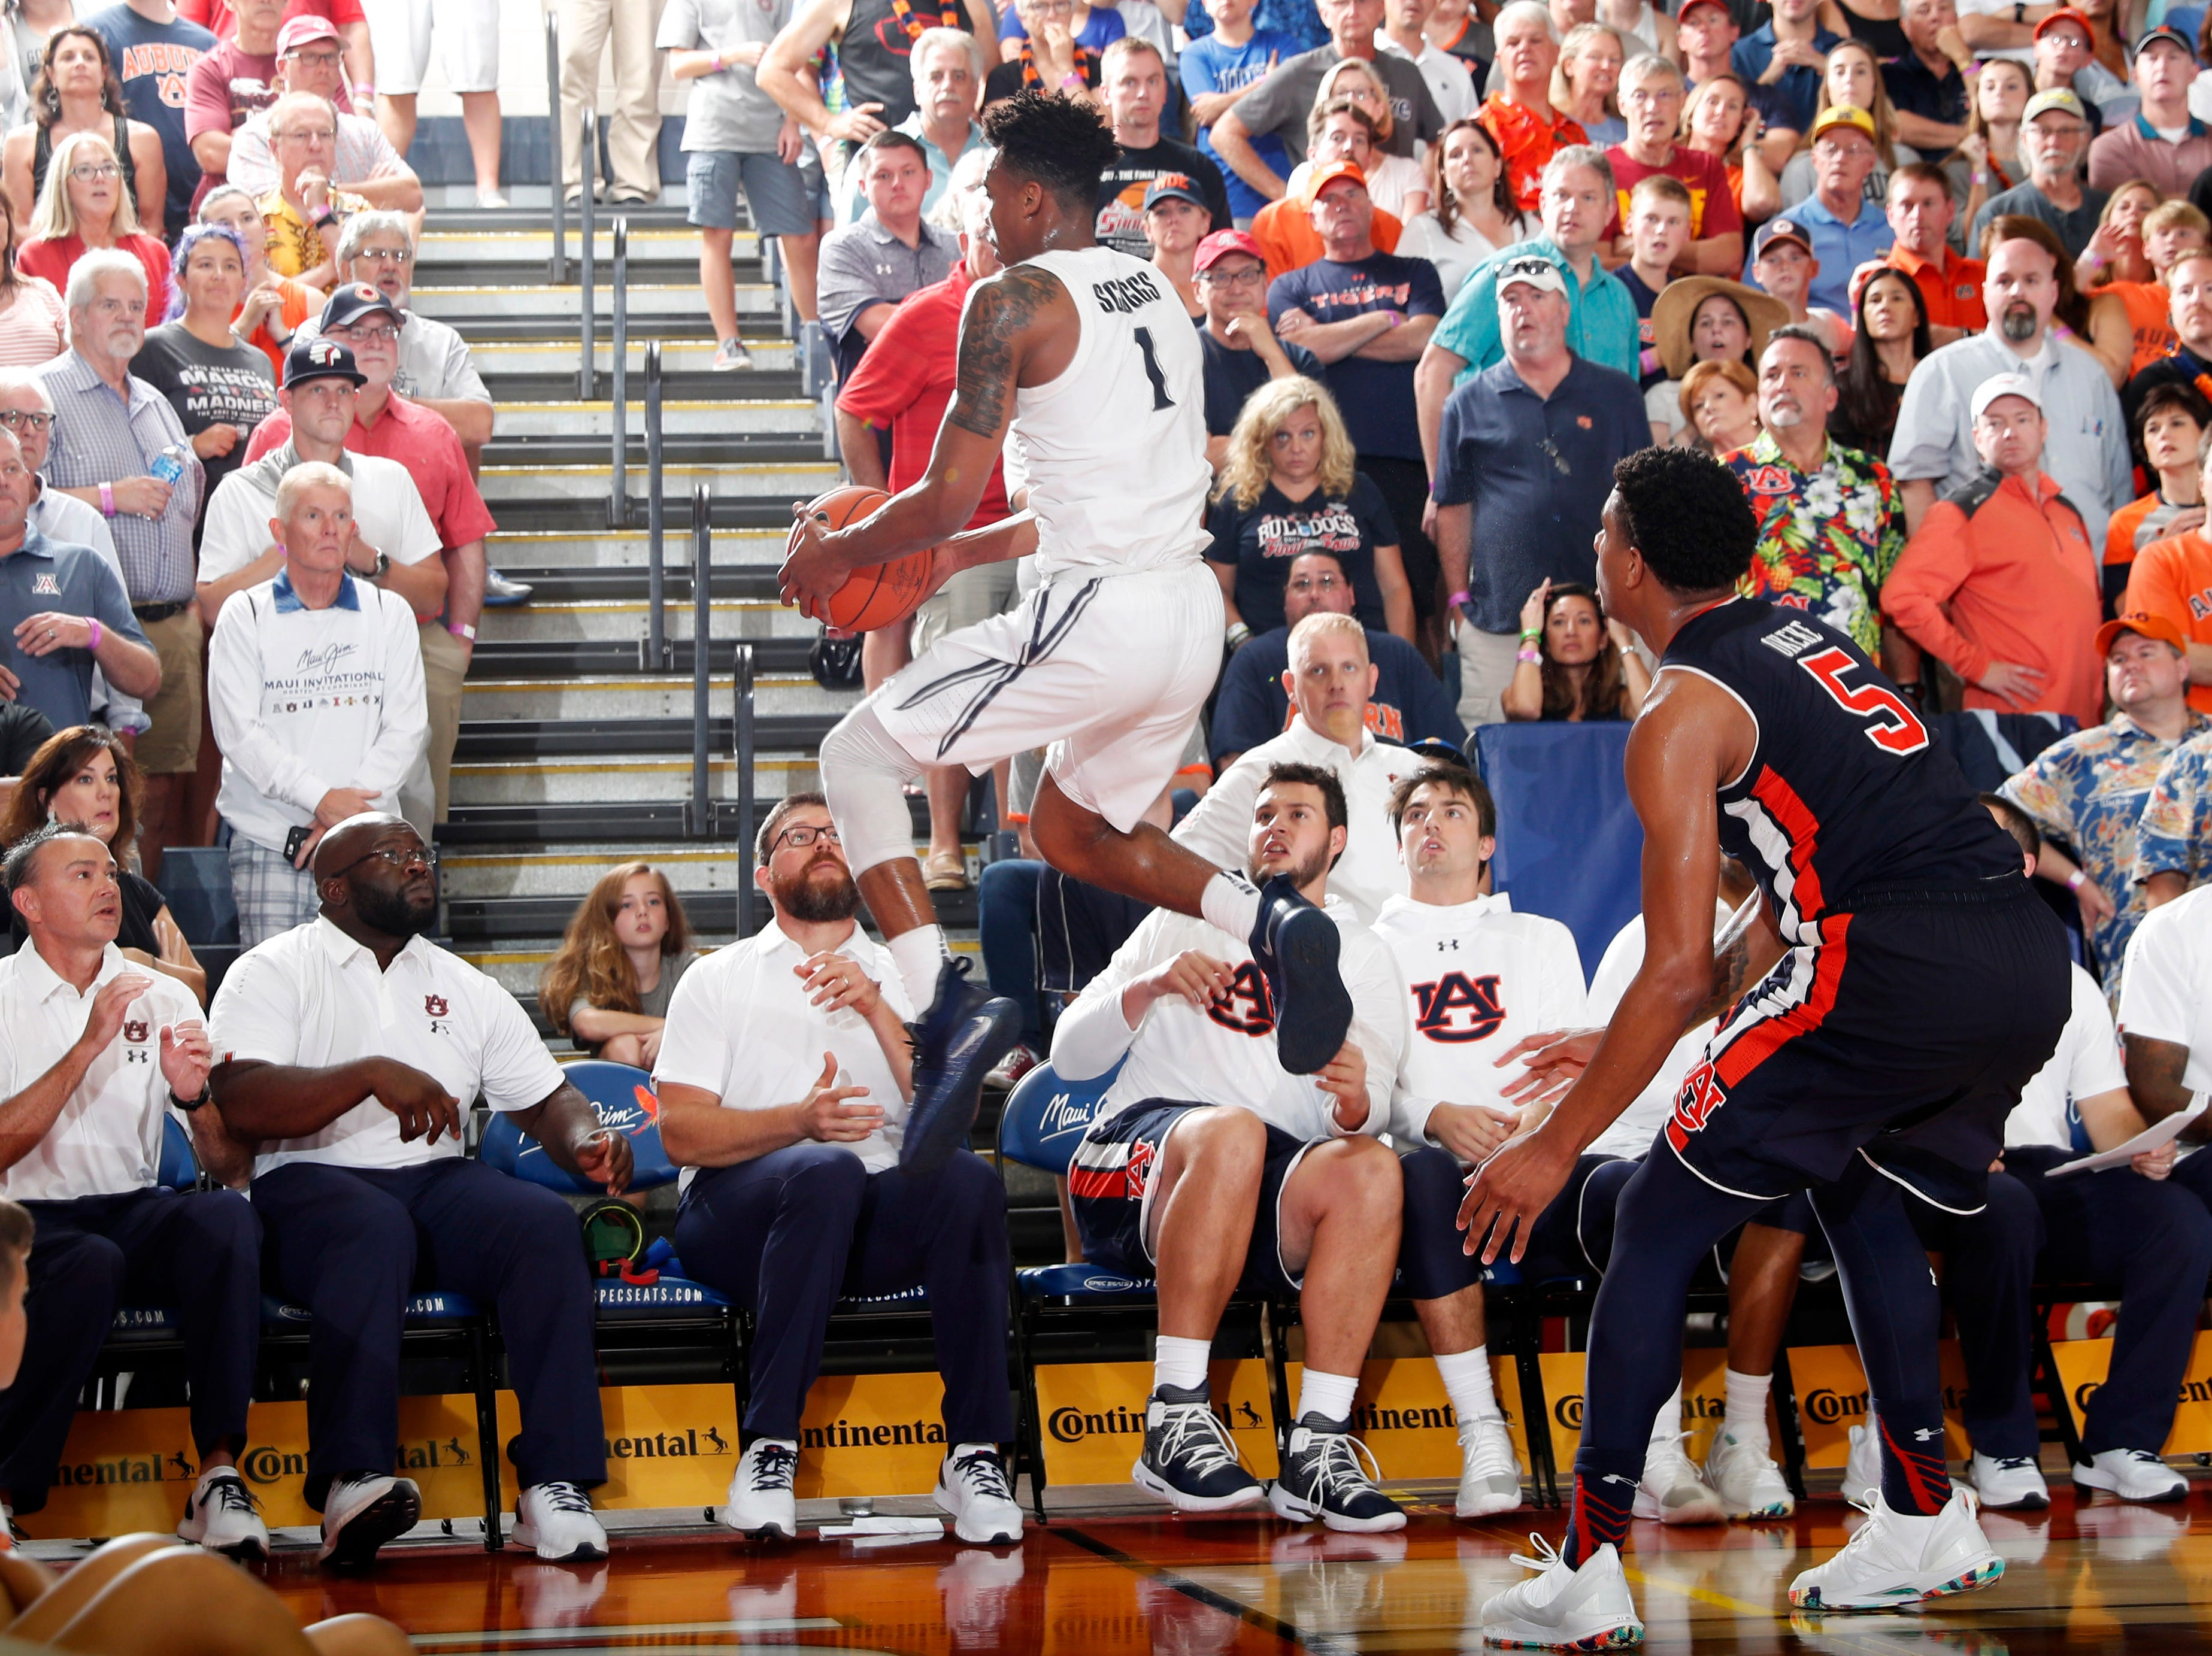 Nov 19, 2018; Lahaina, HI, USA; Xavier Musketeers guard Paul Scruggs (1) saves the ball from going out of bounds against the Auburn Tigers in the second half during the first round games of the Maui Jim Maui Invitational at Lahaina Civic Center. Mandatory Credit: Brian Spurlock-USA TODAY Sports